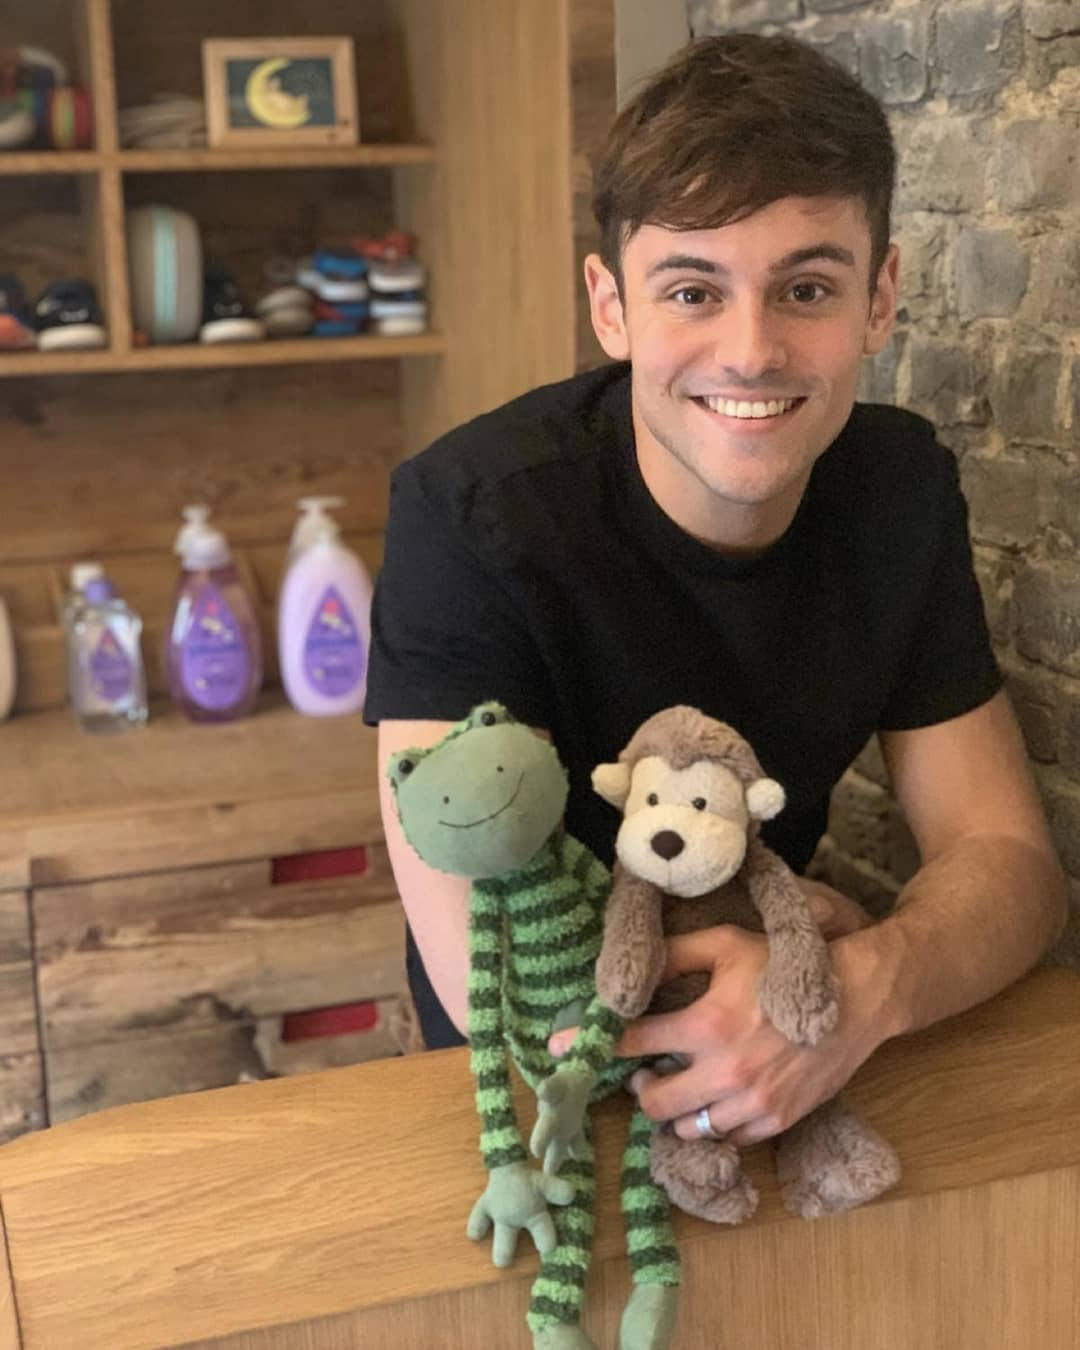 Mum & Baby: A Calmer Bedtime With Johnson's Baby And Tom Daley